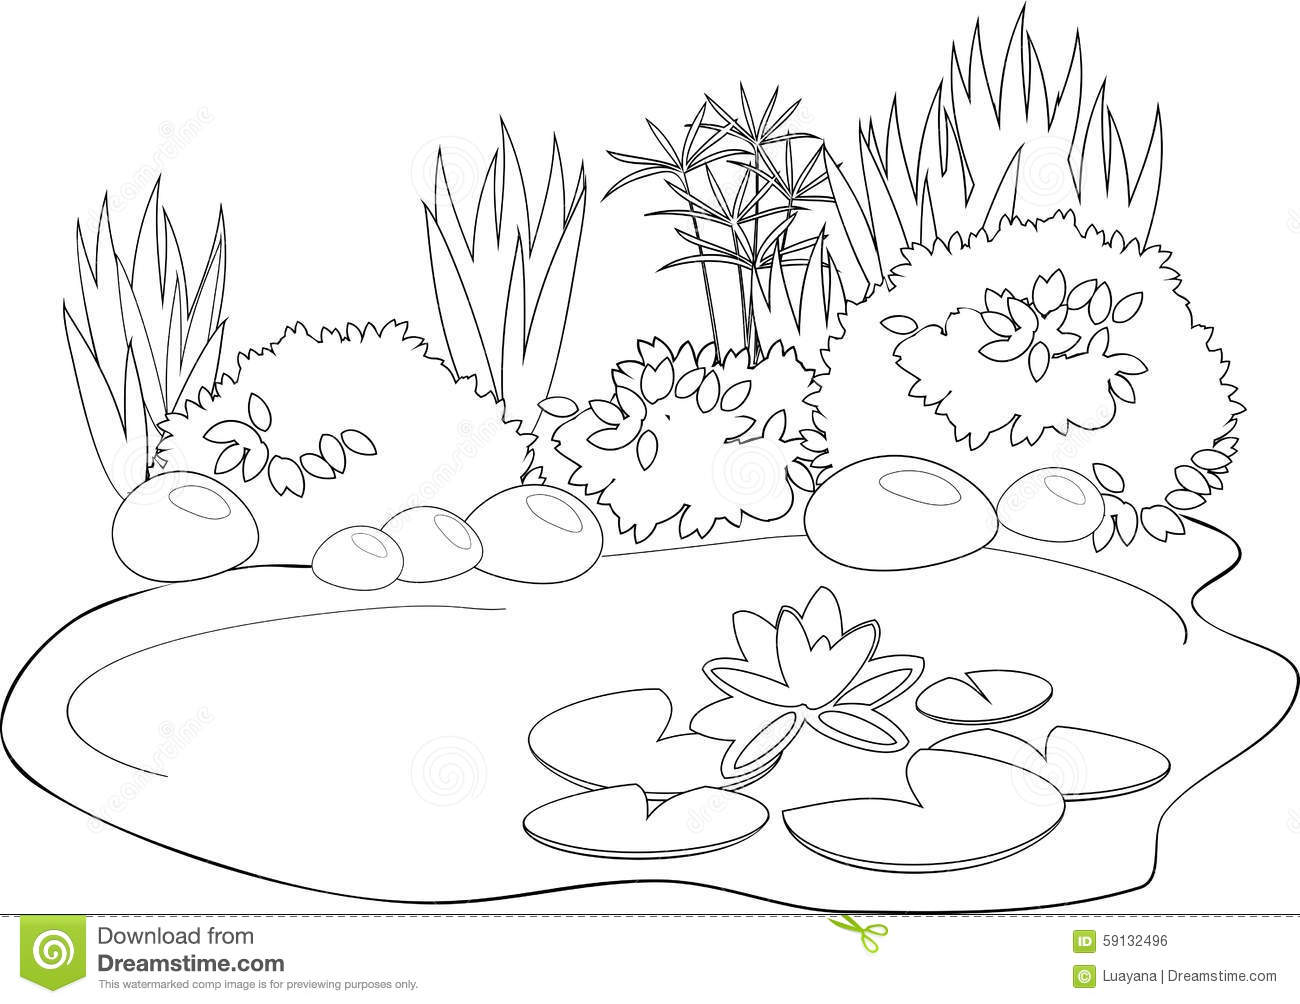 Coloring pond stock vector. Illustration of book, cute ...